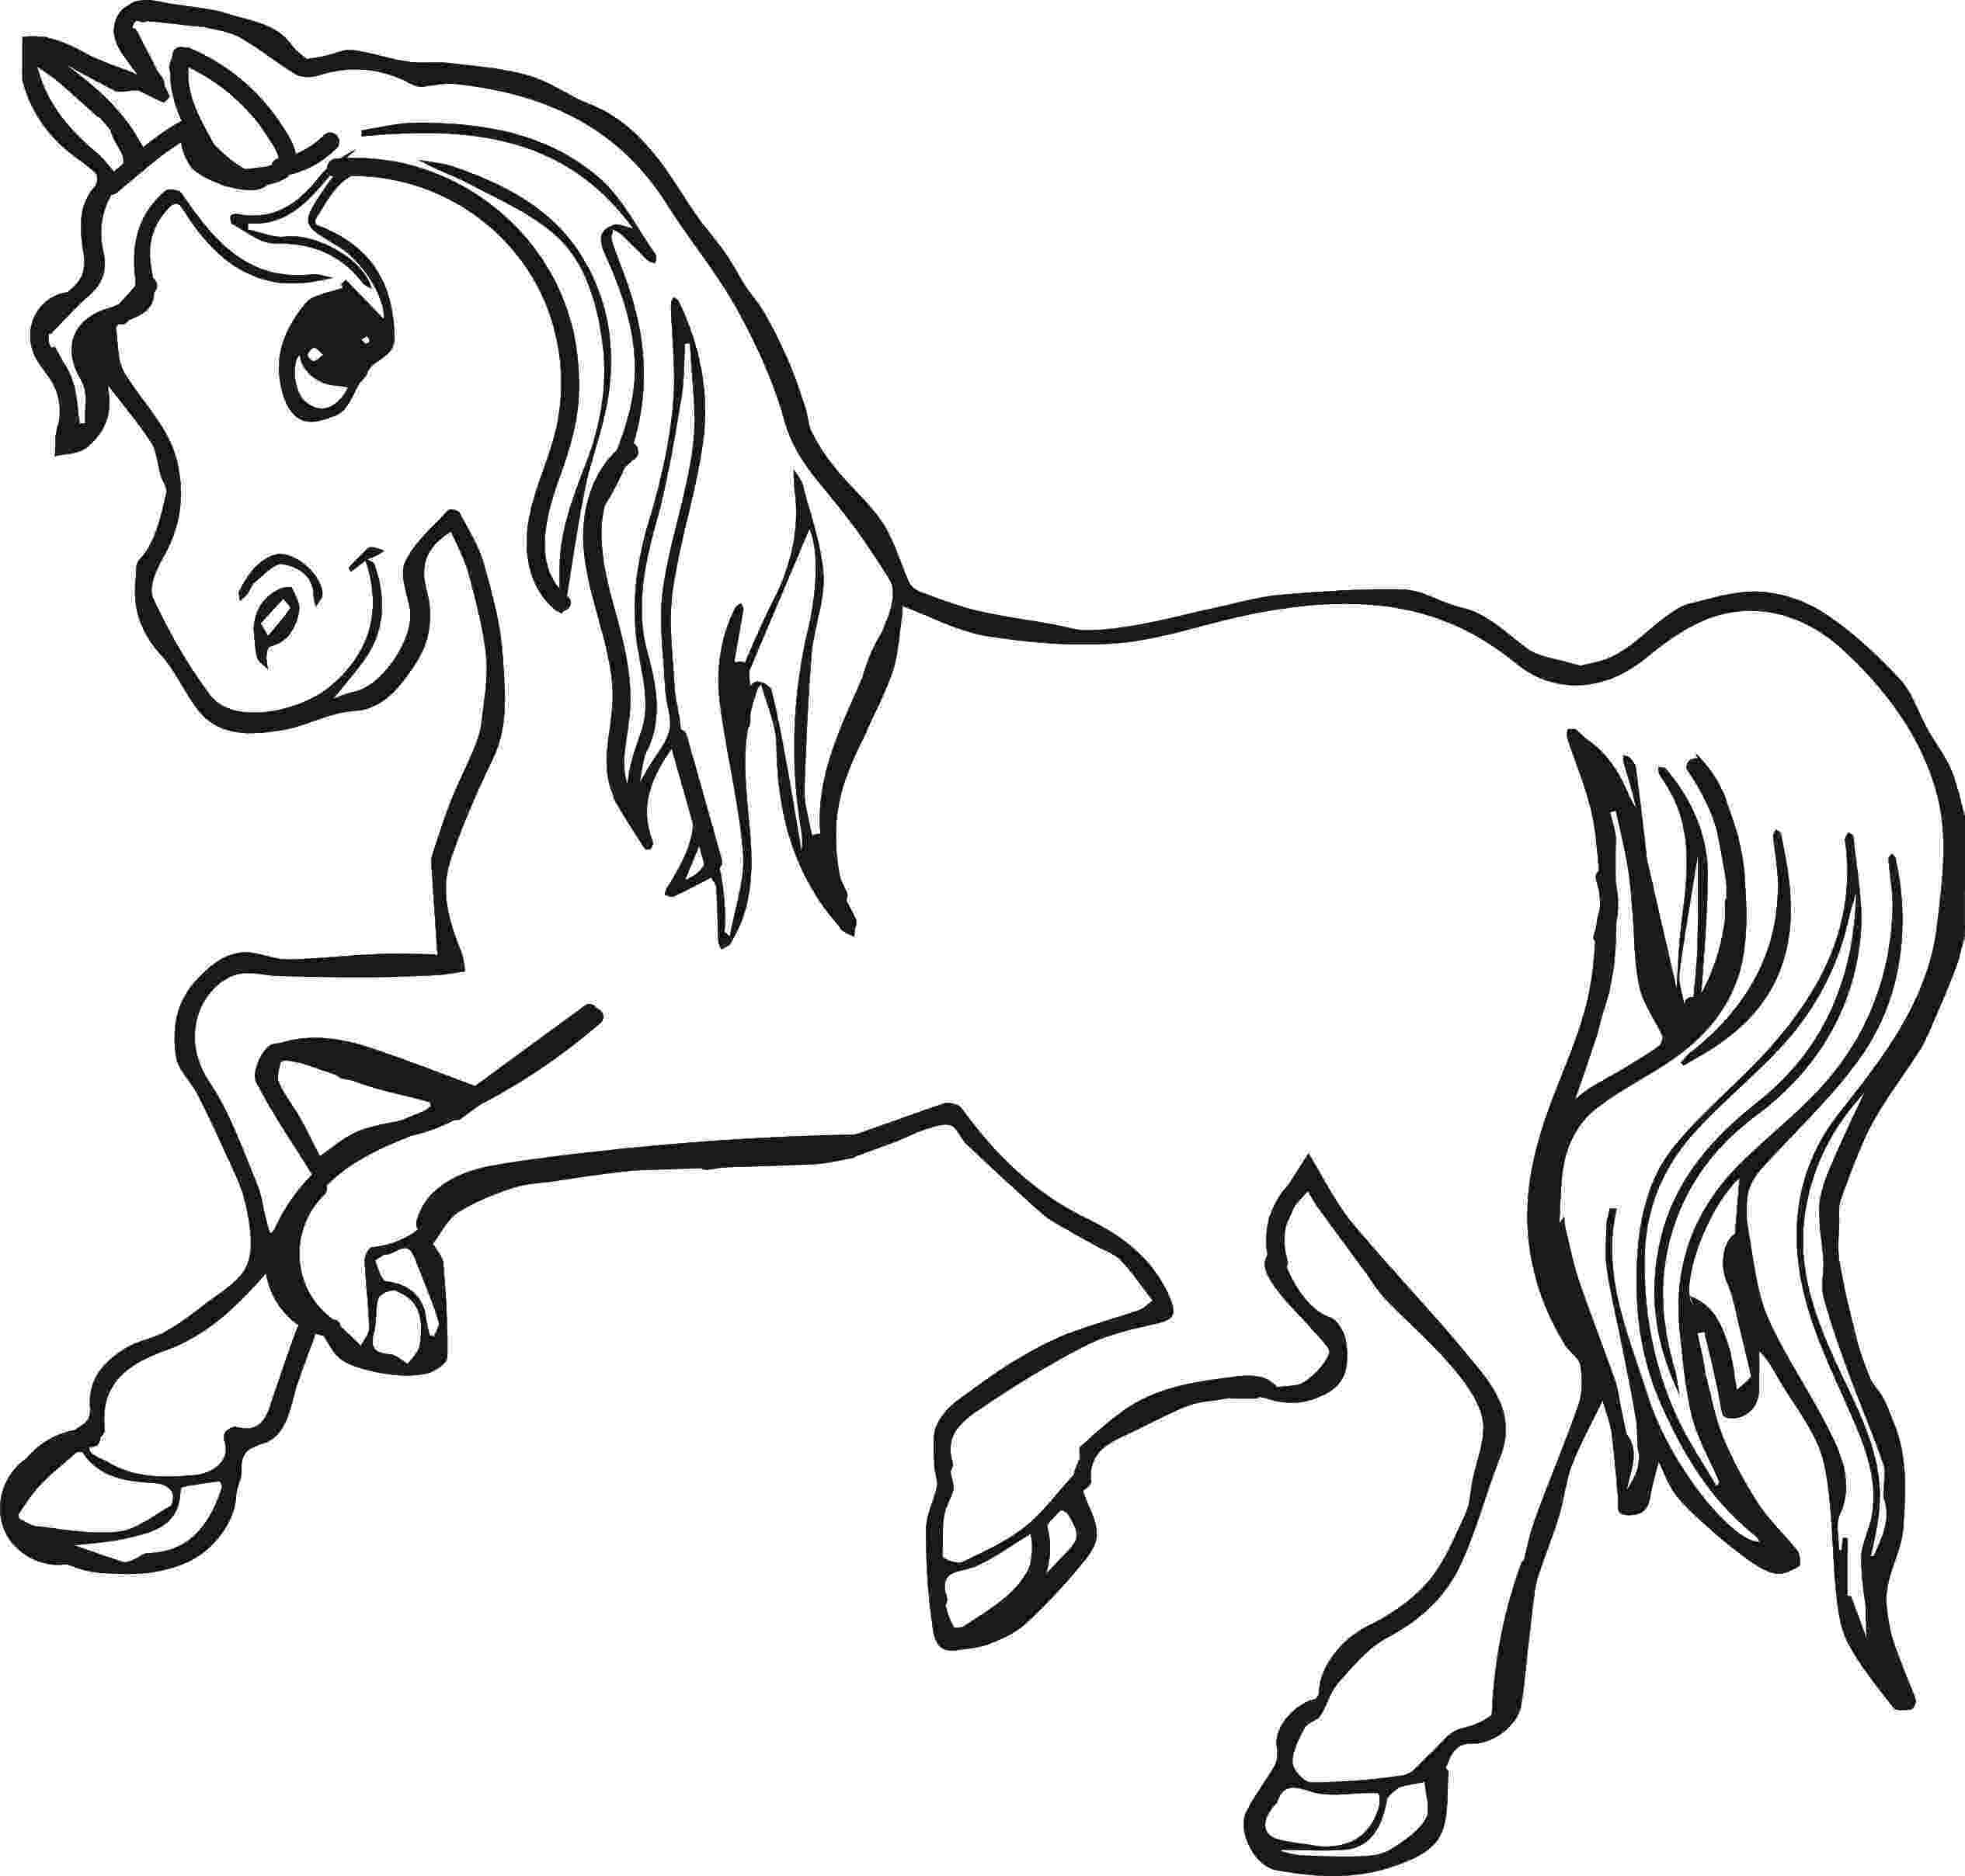 coloring pages of horses and ponies 30 best horse coloring pages ideas we need fun coloring horses pages and ponies of